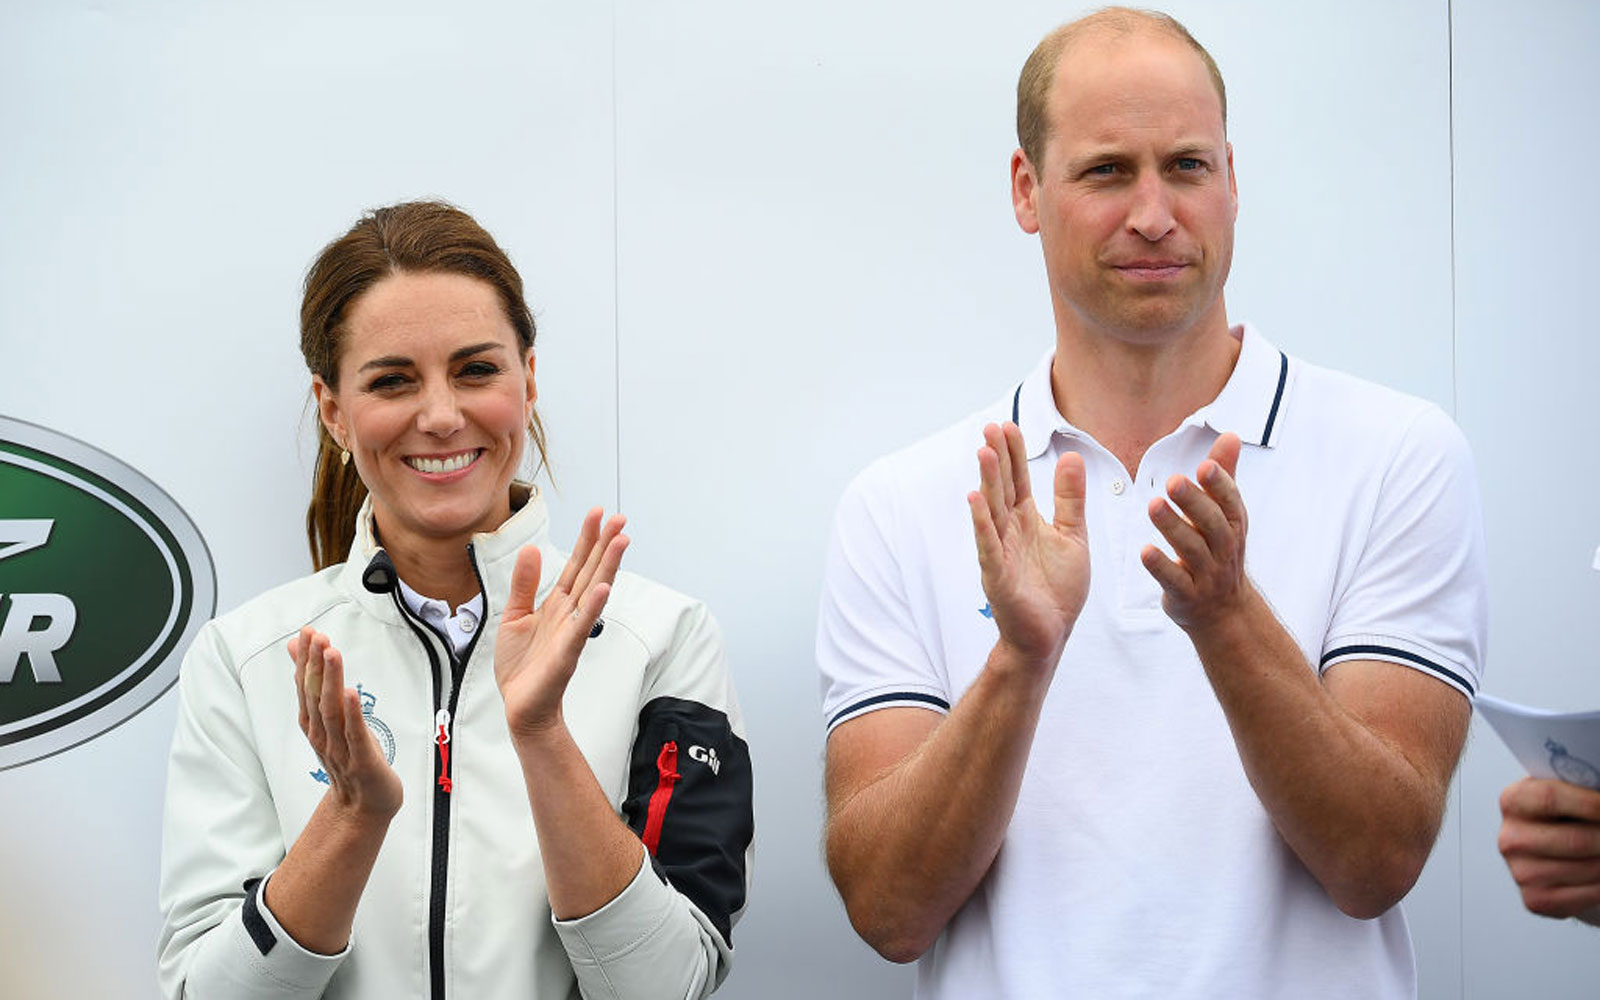 See Kate Middleton's Hilarious Reaction to Losing a Sailing Race to Prince William